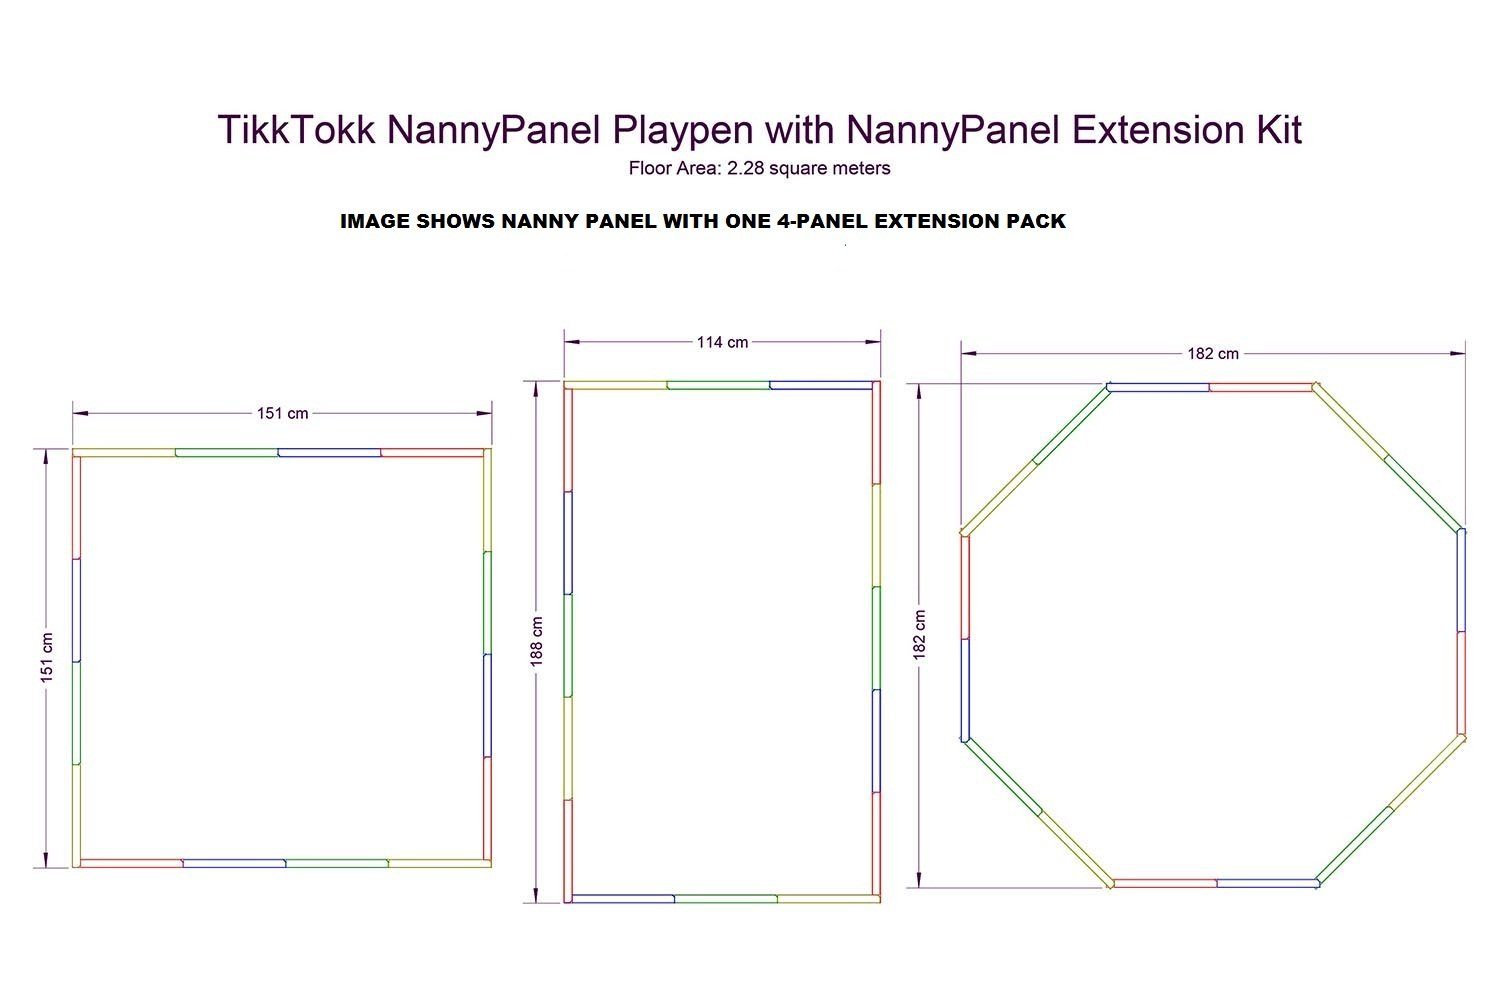 TikkTokk Nanny Panel Playpen Extension Pack (multi-Coloured) TikkTokk Extension Pack for the Nanny Panel Play Pen (TNP01C) - contains 4 panels each 38cm wide One extension pack will increase Playpen to 152cm x 152cm 2 year manufacturer's guarantee 6